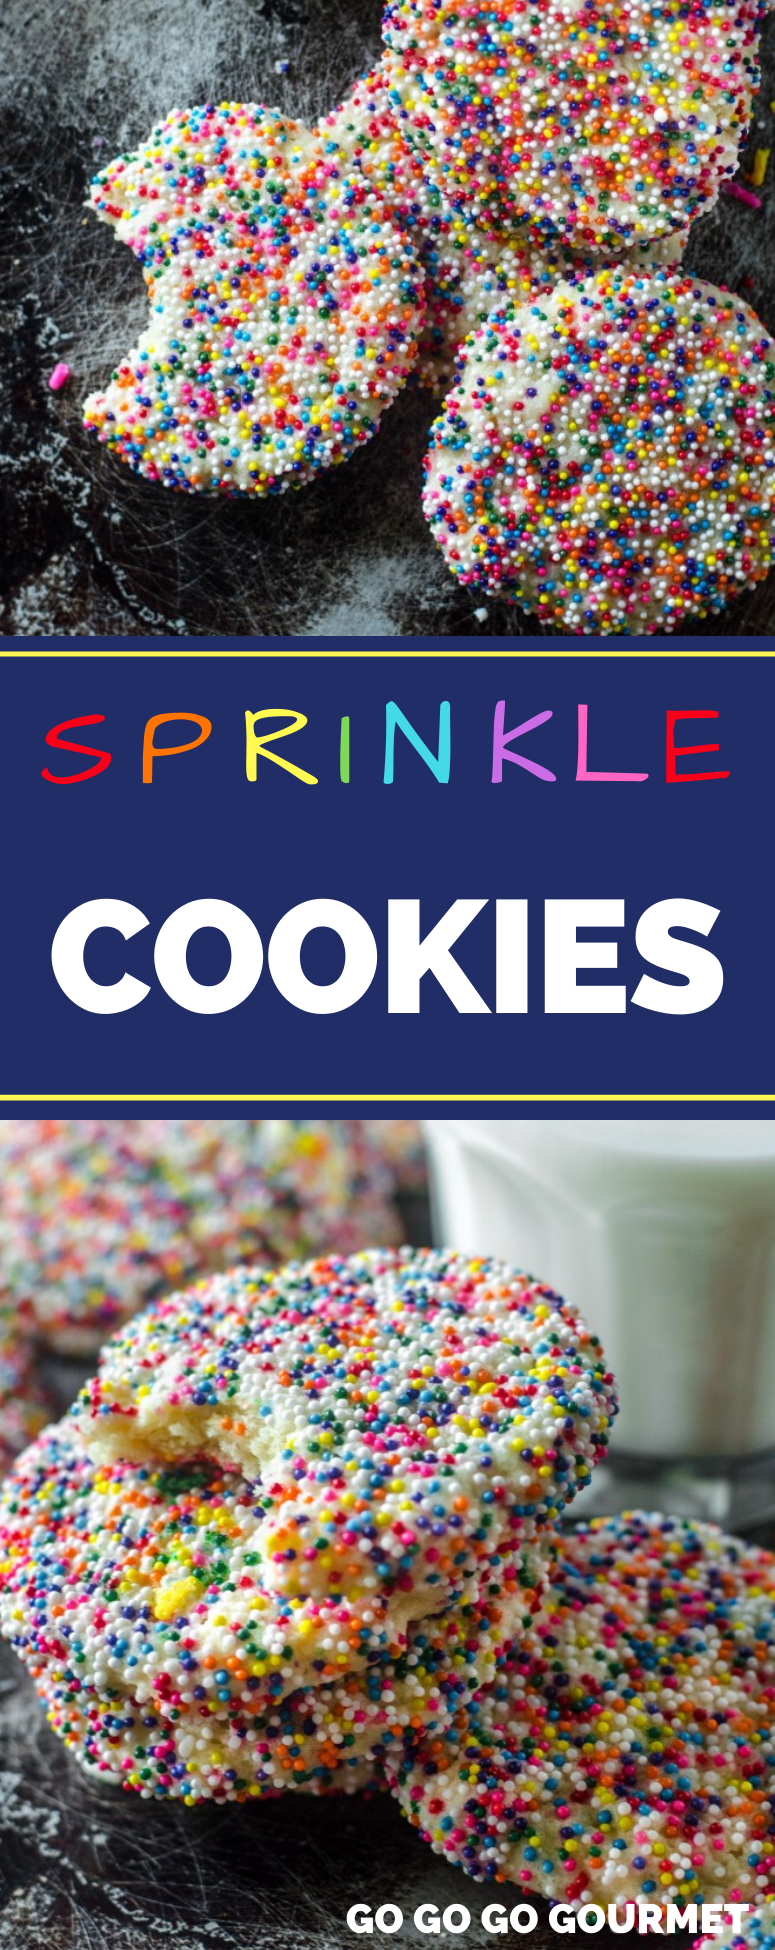 Whether you make these for fall or Christmas, this Italian Sprinkle Cookie recipe is the best! Decorated with rainbow sprinkles, these easy cookies are soft, chewy and totally delicious! Move over Pioneer Woman, there's a new cookie in town! #gogogogourmet #sprinklecookies #cookieswithsprinkles #easycookierecipes  via @gogogogourmet